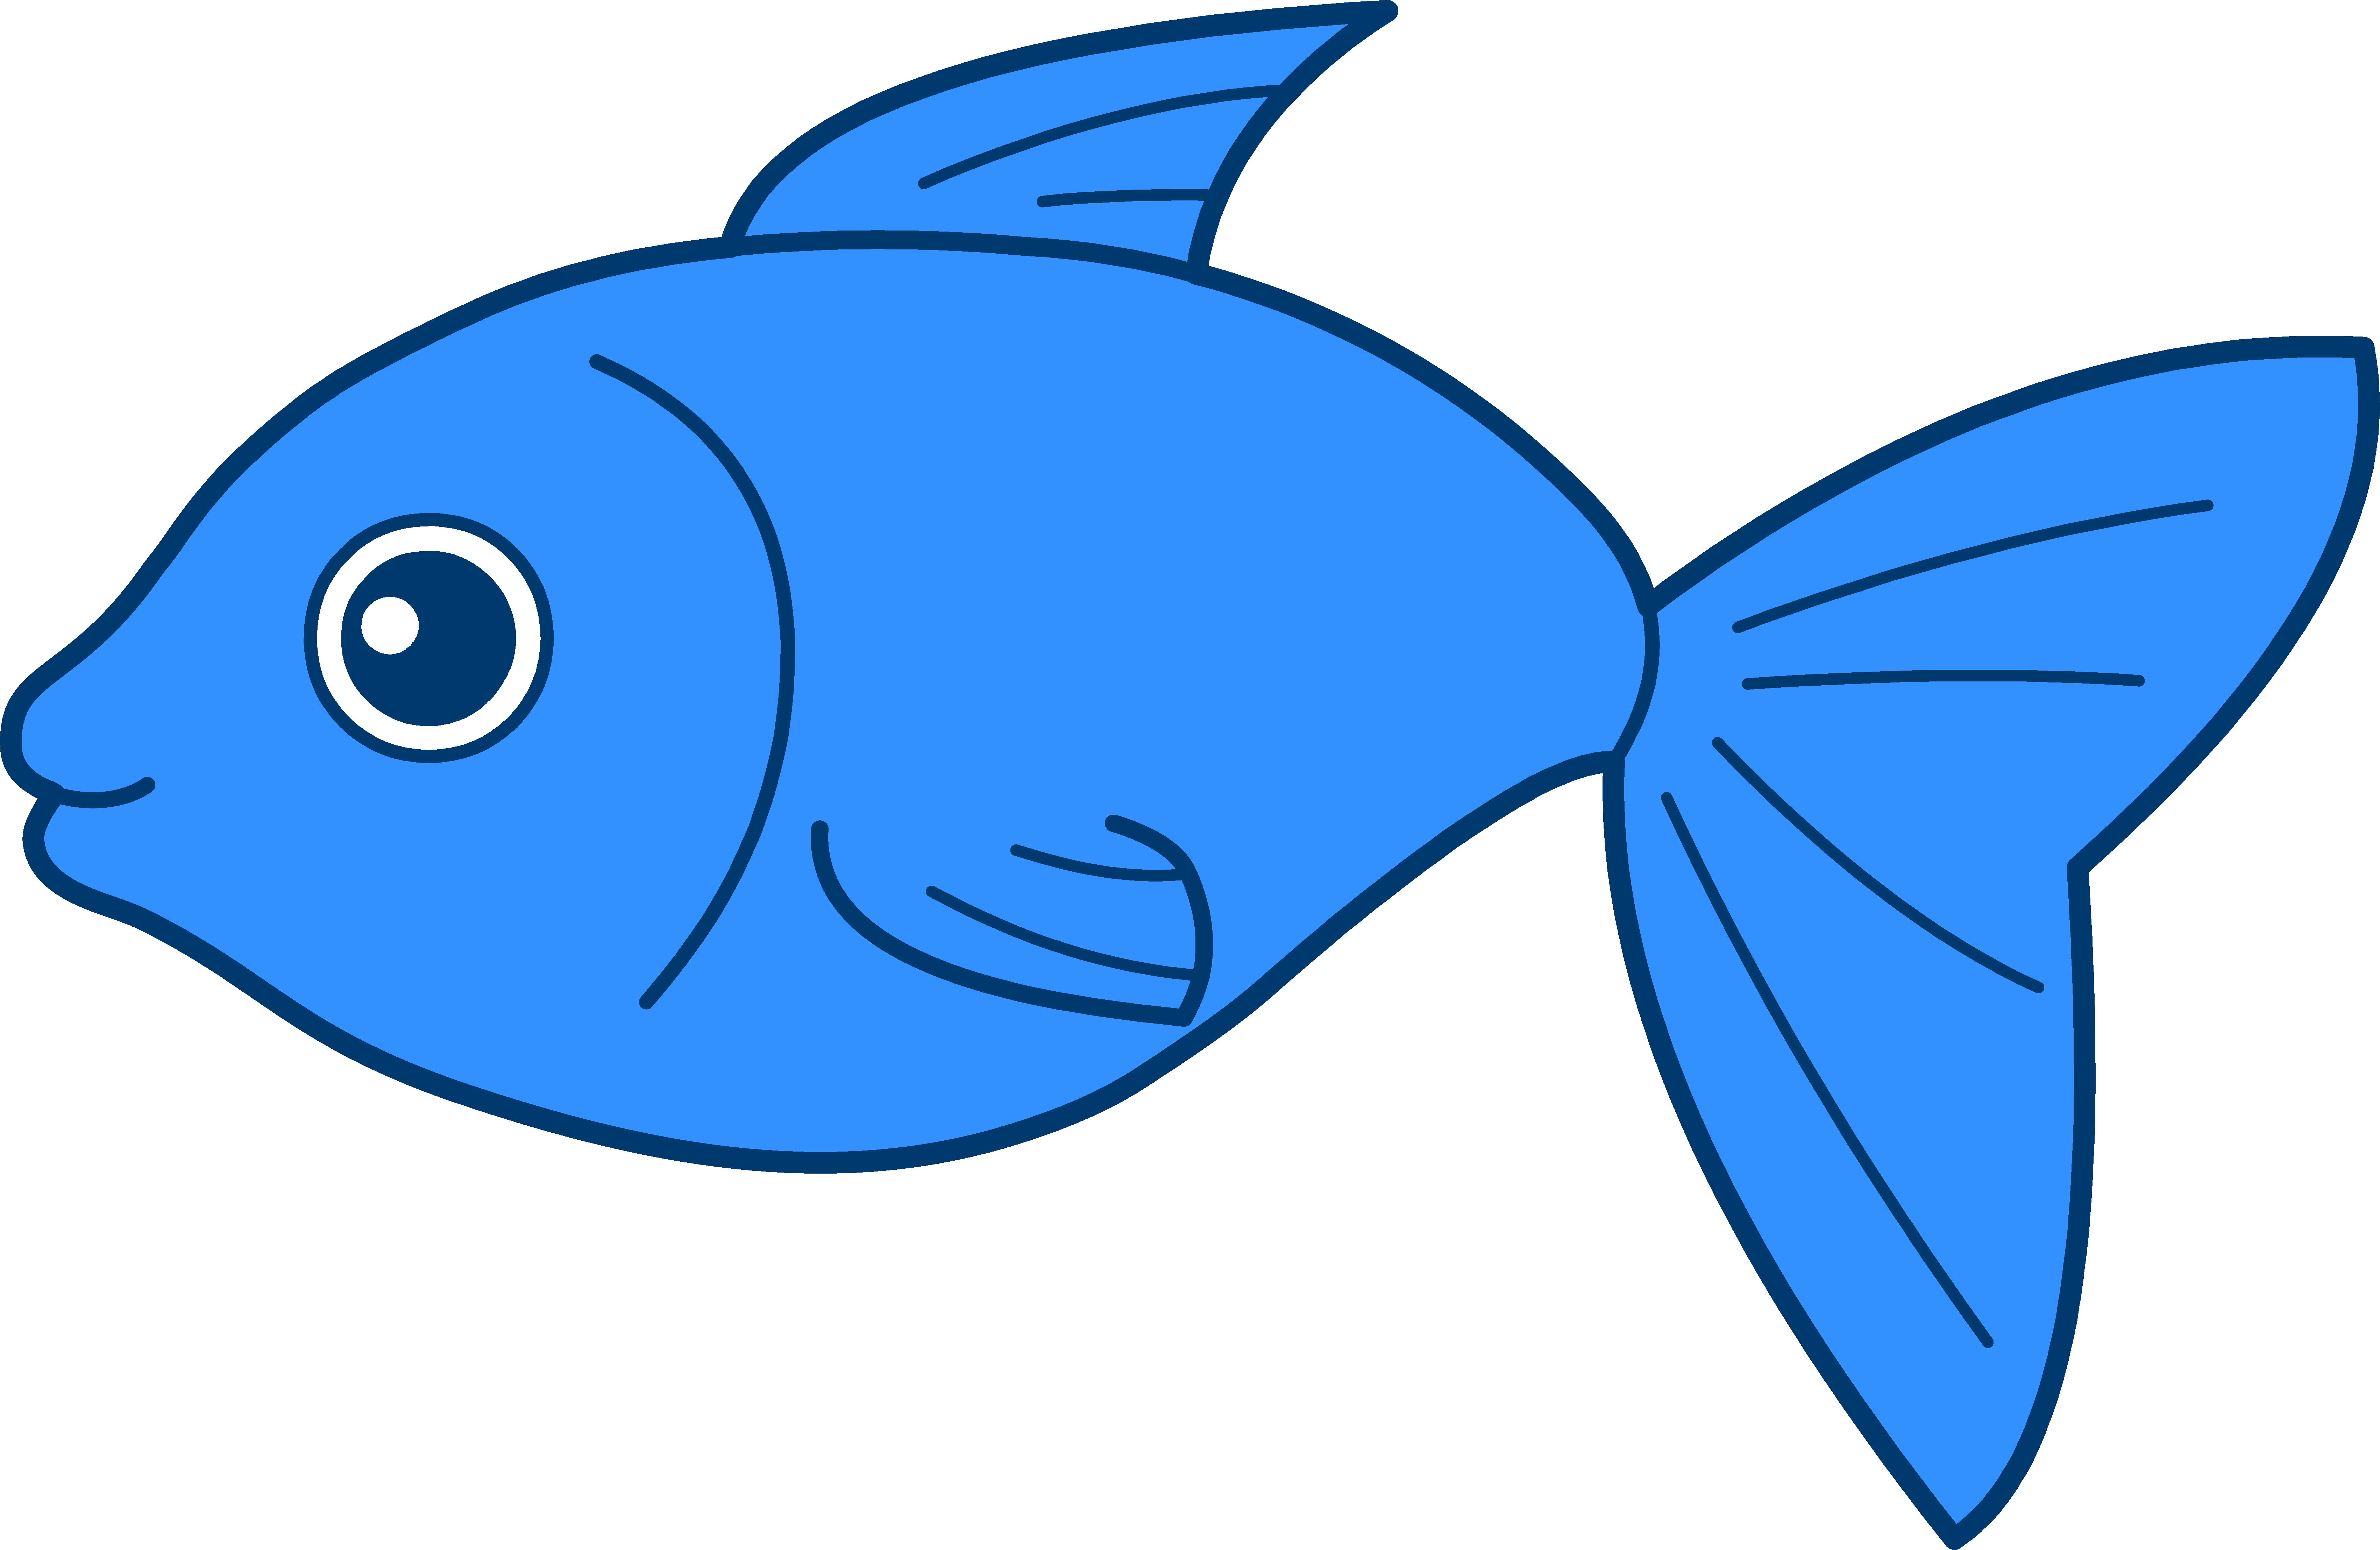 Fish Animated Png - ClipArt Best